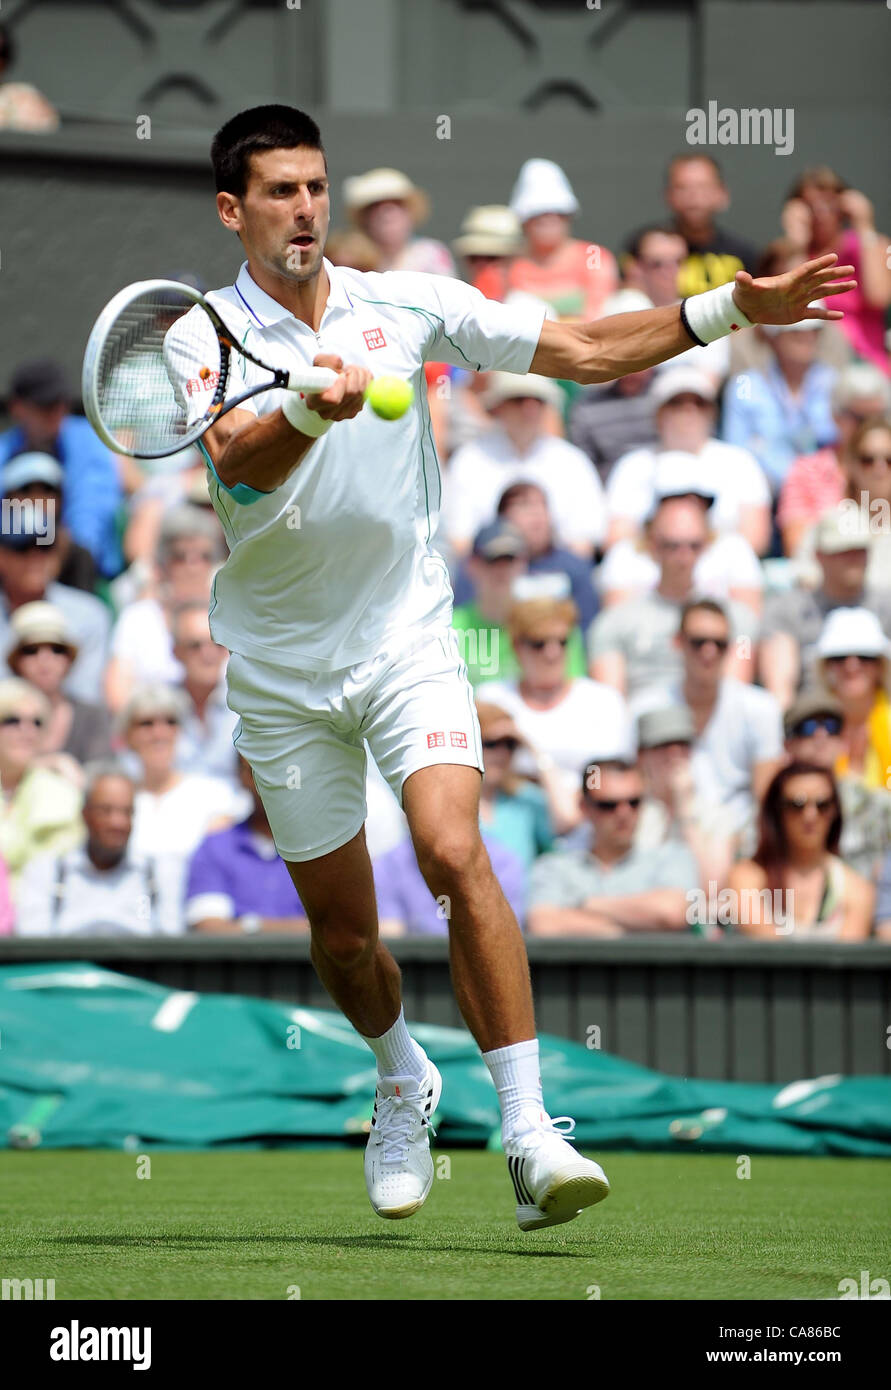 NOVAK DJOKOVIC SERBIA THE ALL ENGLAND TENNIS CLUB WIMBLEDON LONDON ENGLAND 25 June 2012 - Stock Image